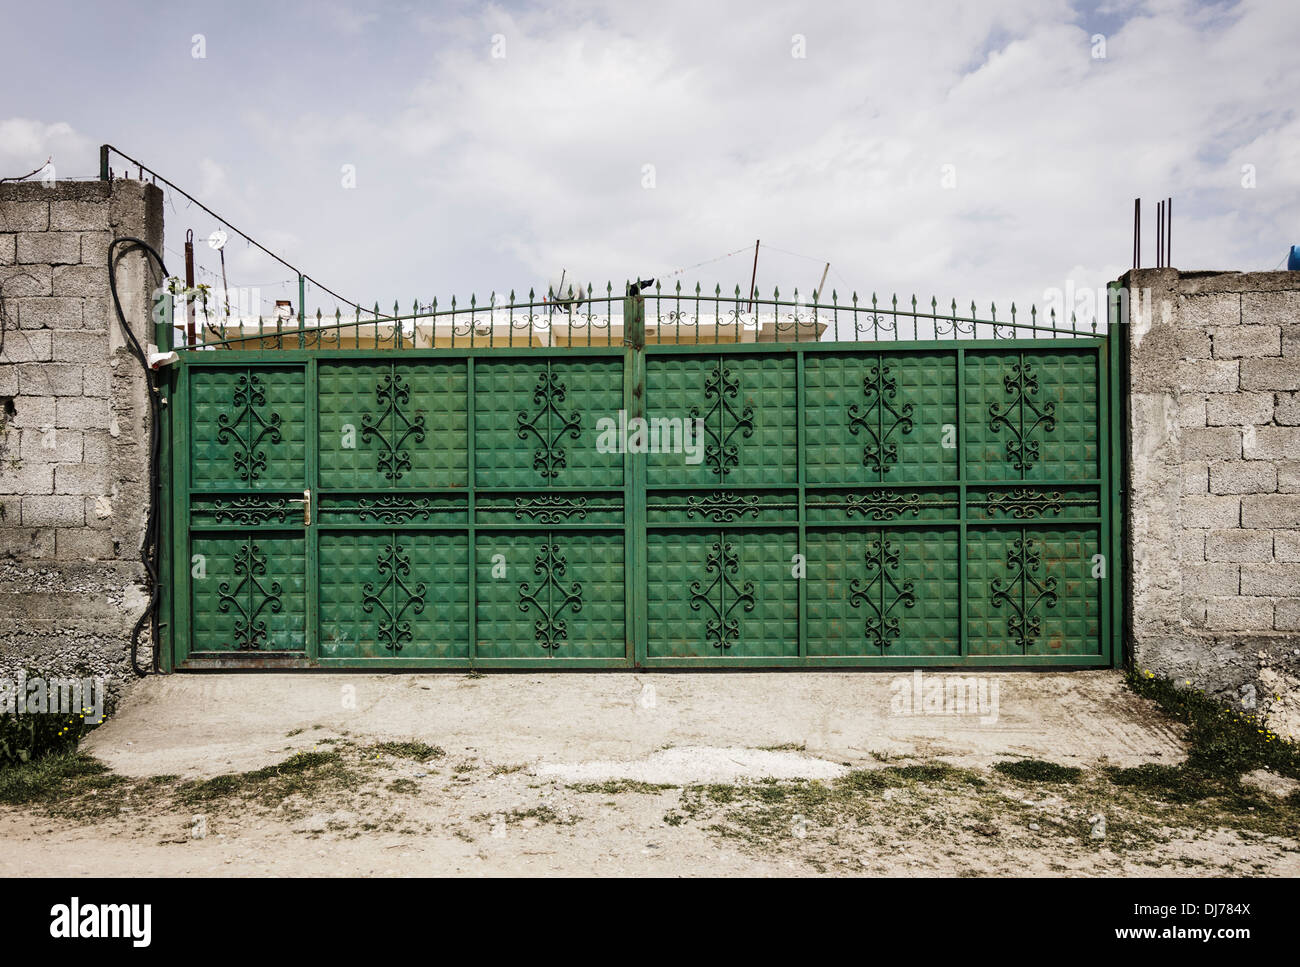 Locked door of a dwelling under the threat of Kanun blood feud. - Stock Image